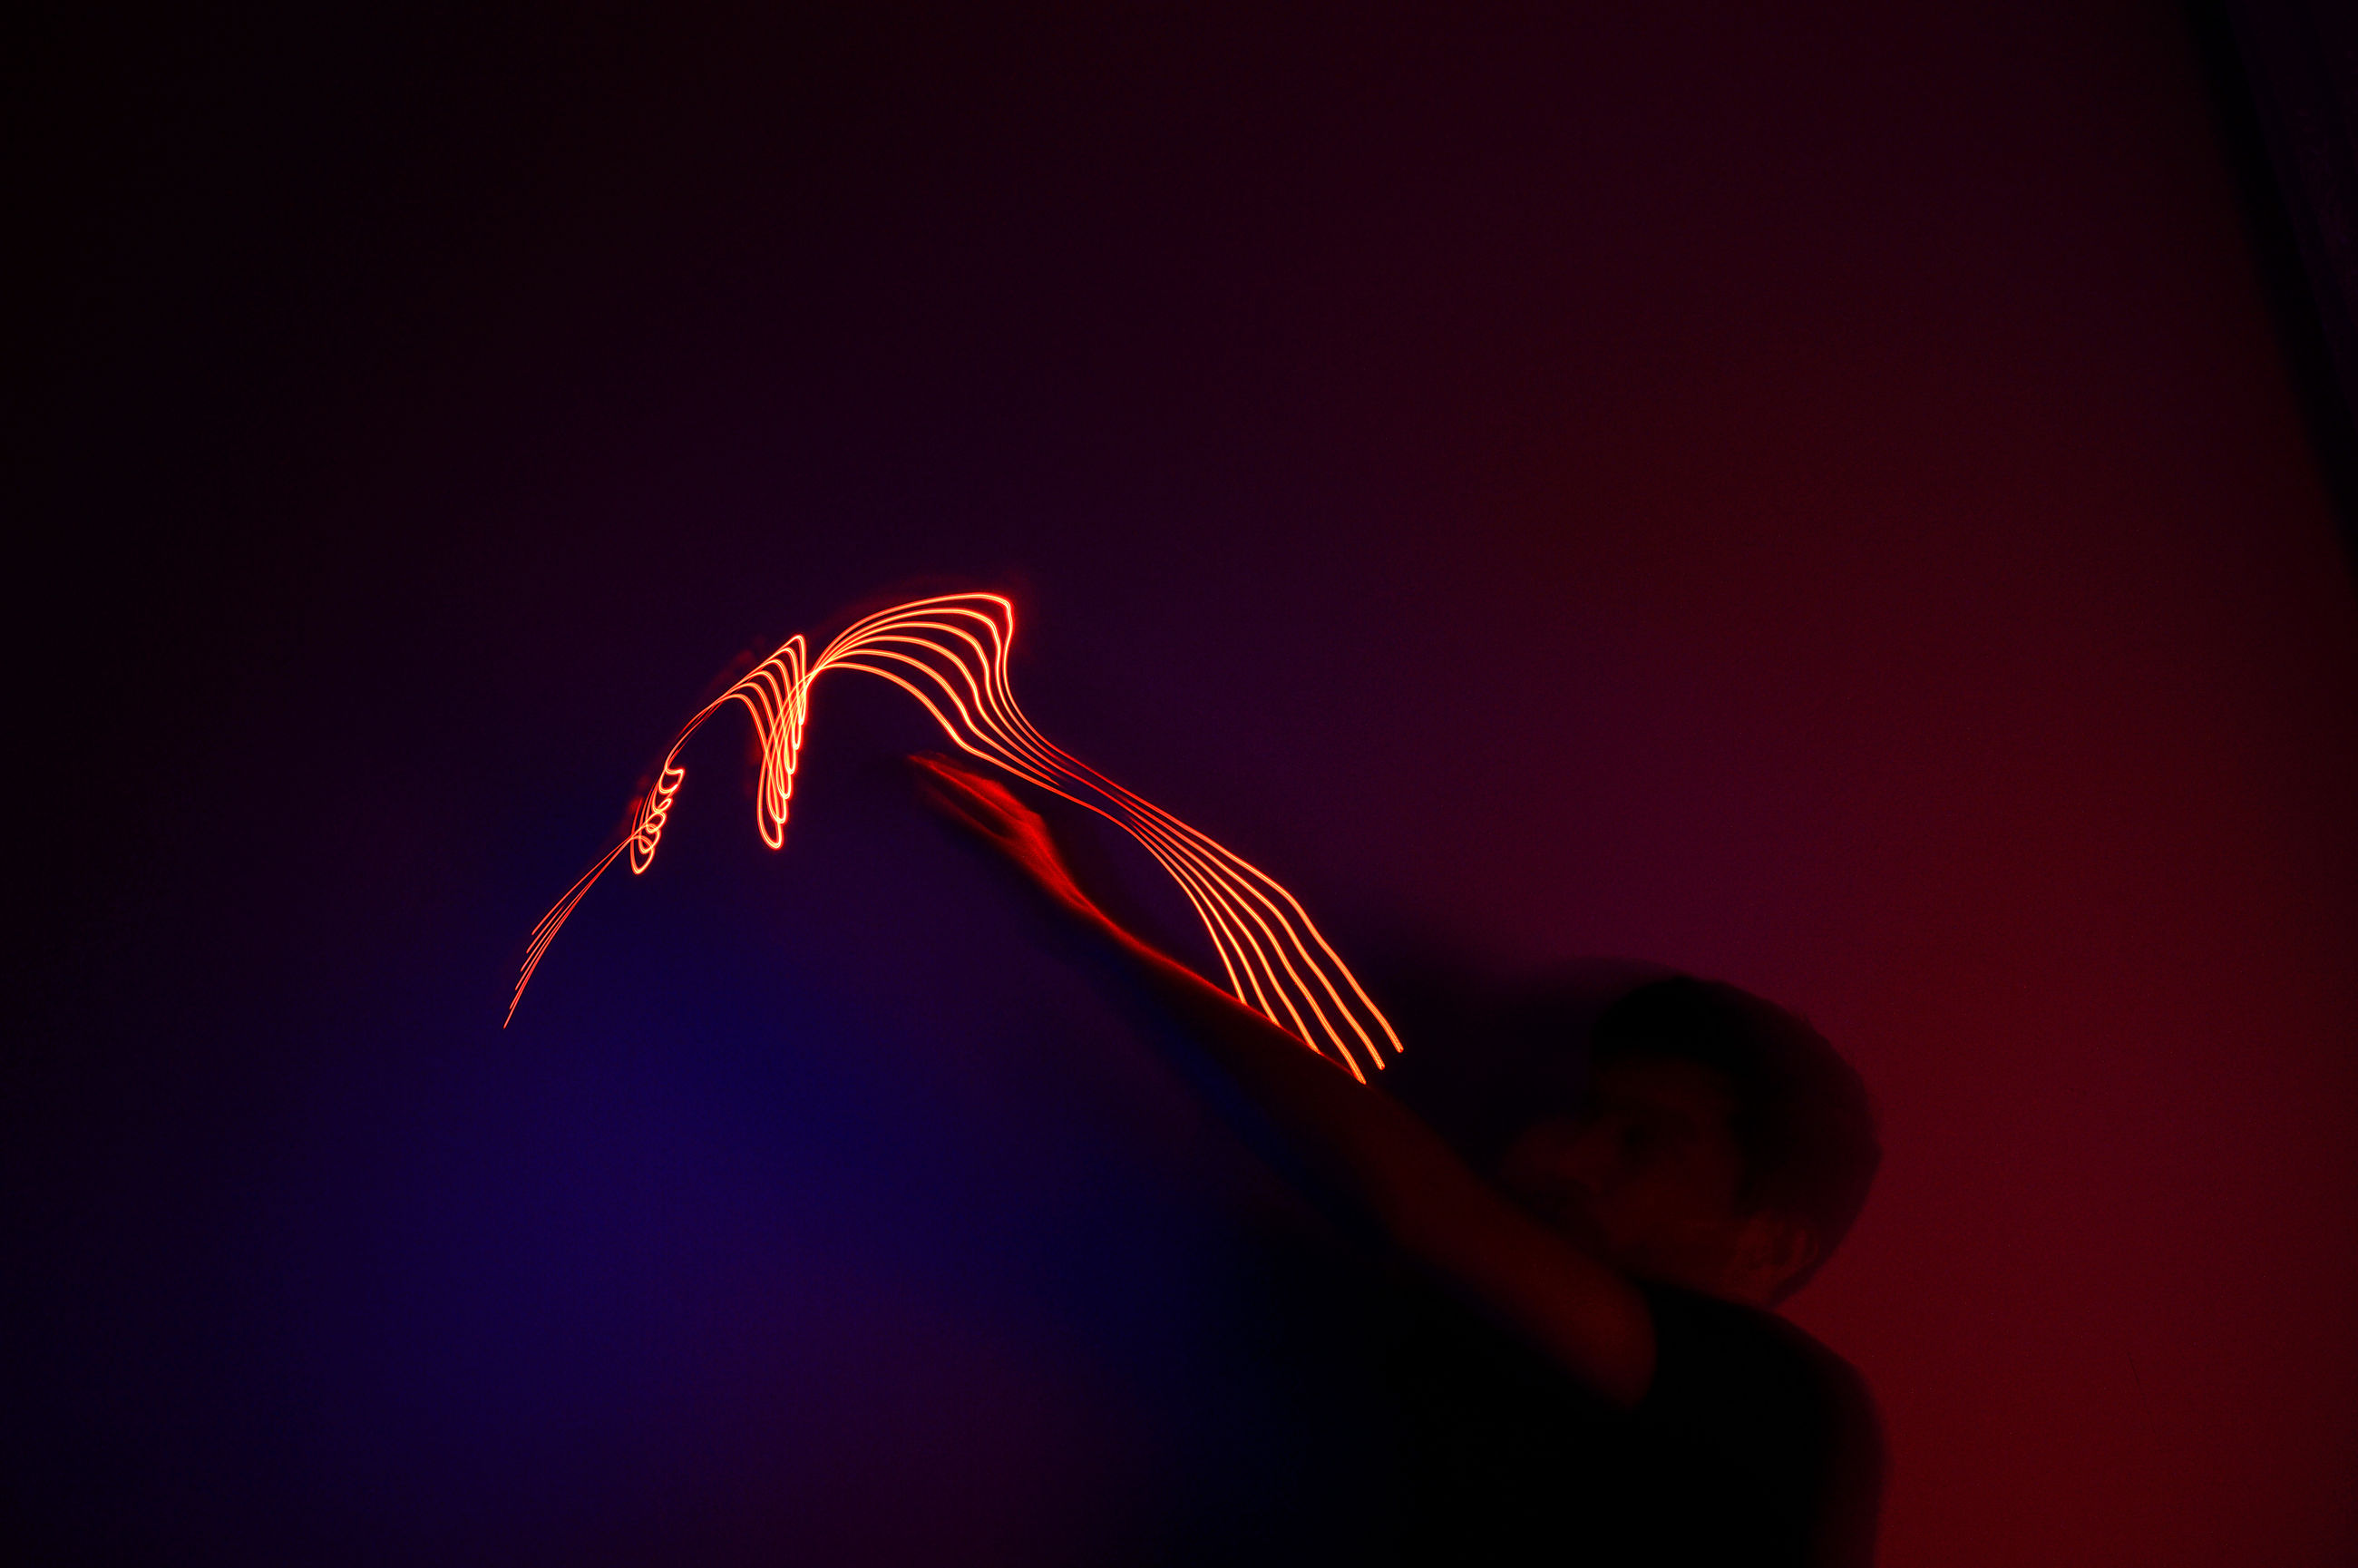 copy space, one person, red, illuminated, long exposure, motion, indoors, studio shot, glowing, close-up, hand, human hand, leisure activity, light painting, lifestyles, night, low angle view, cut out, blurred motion, black background